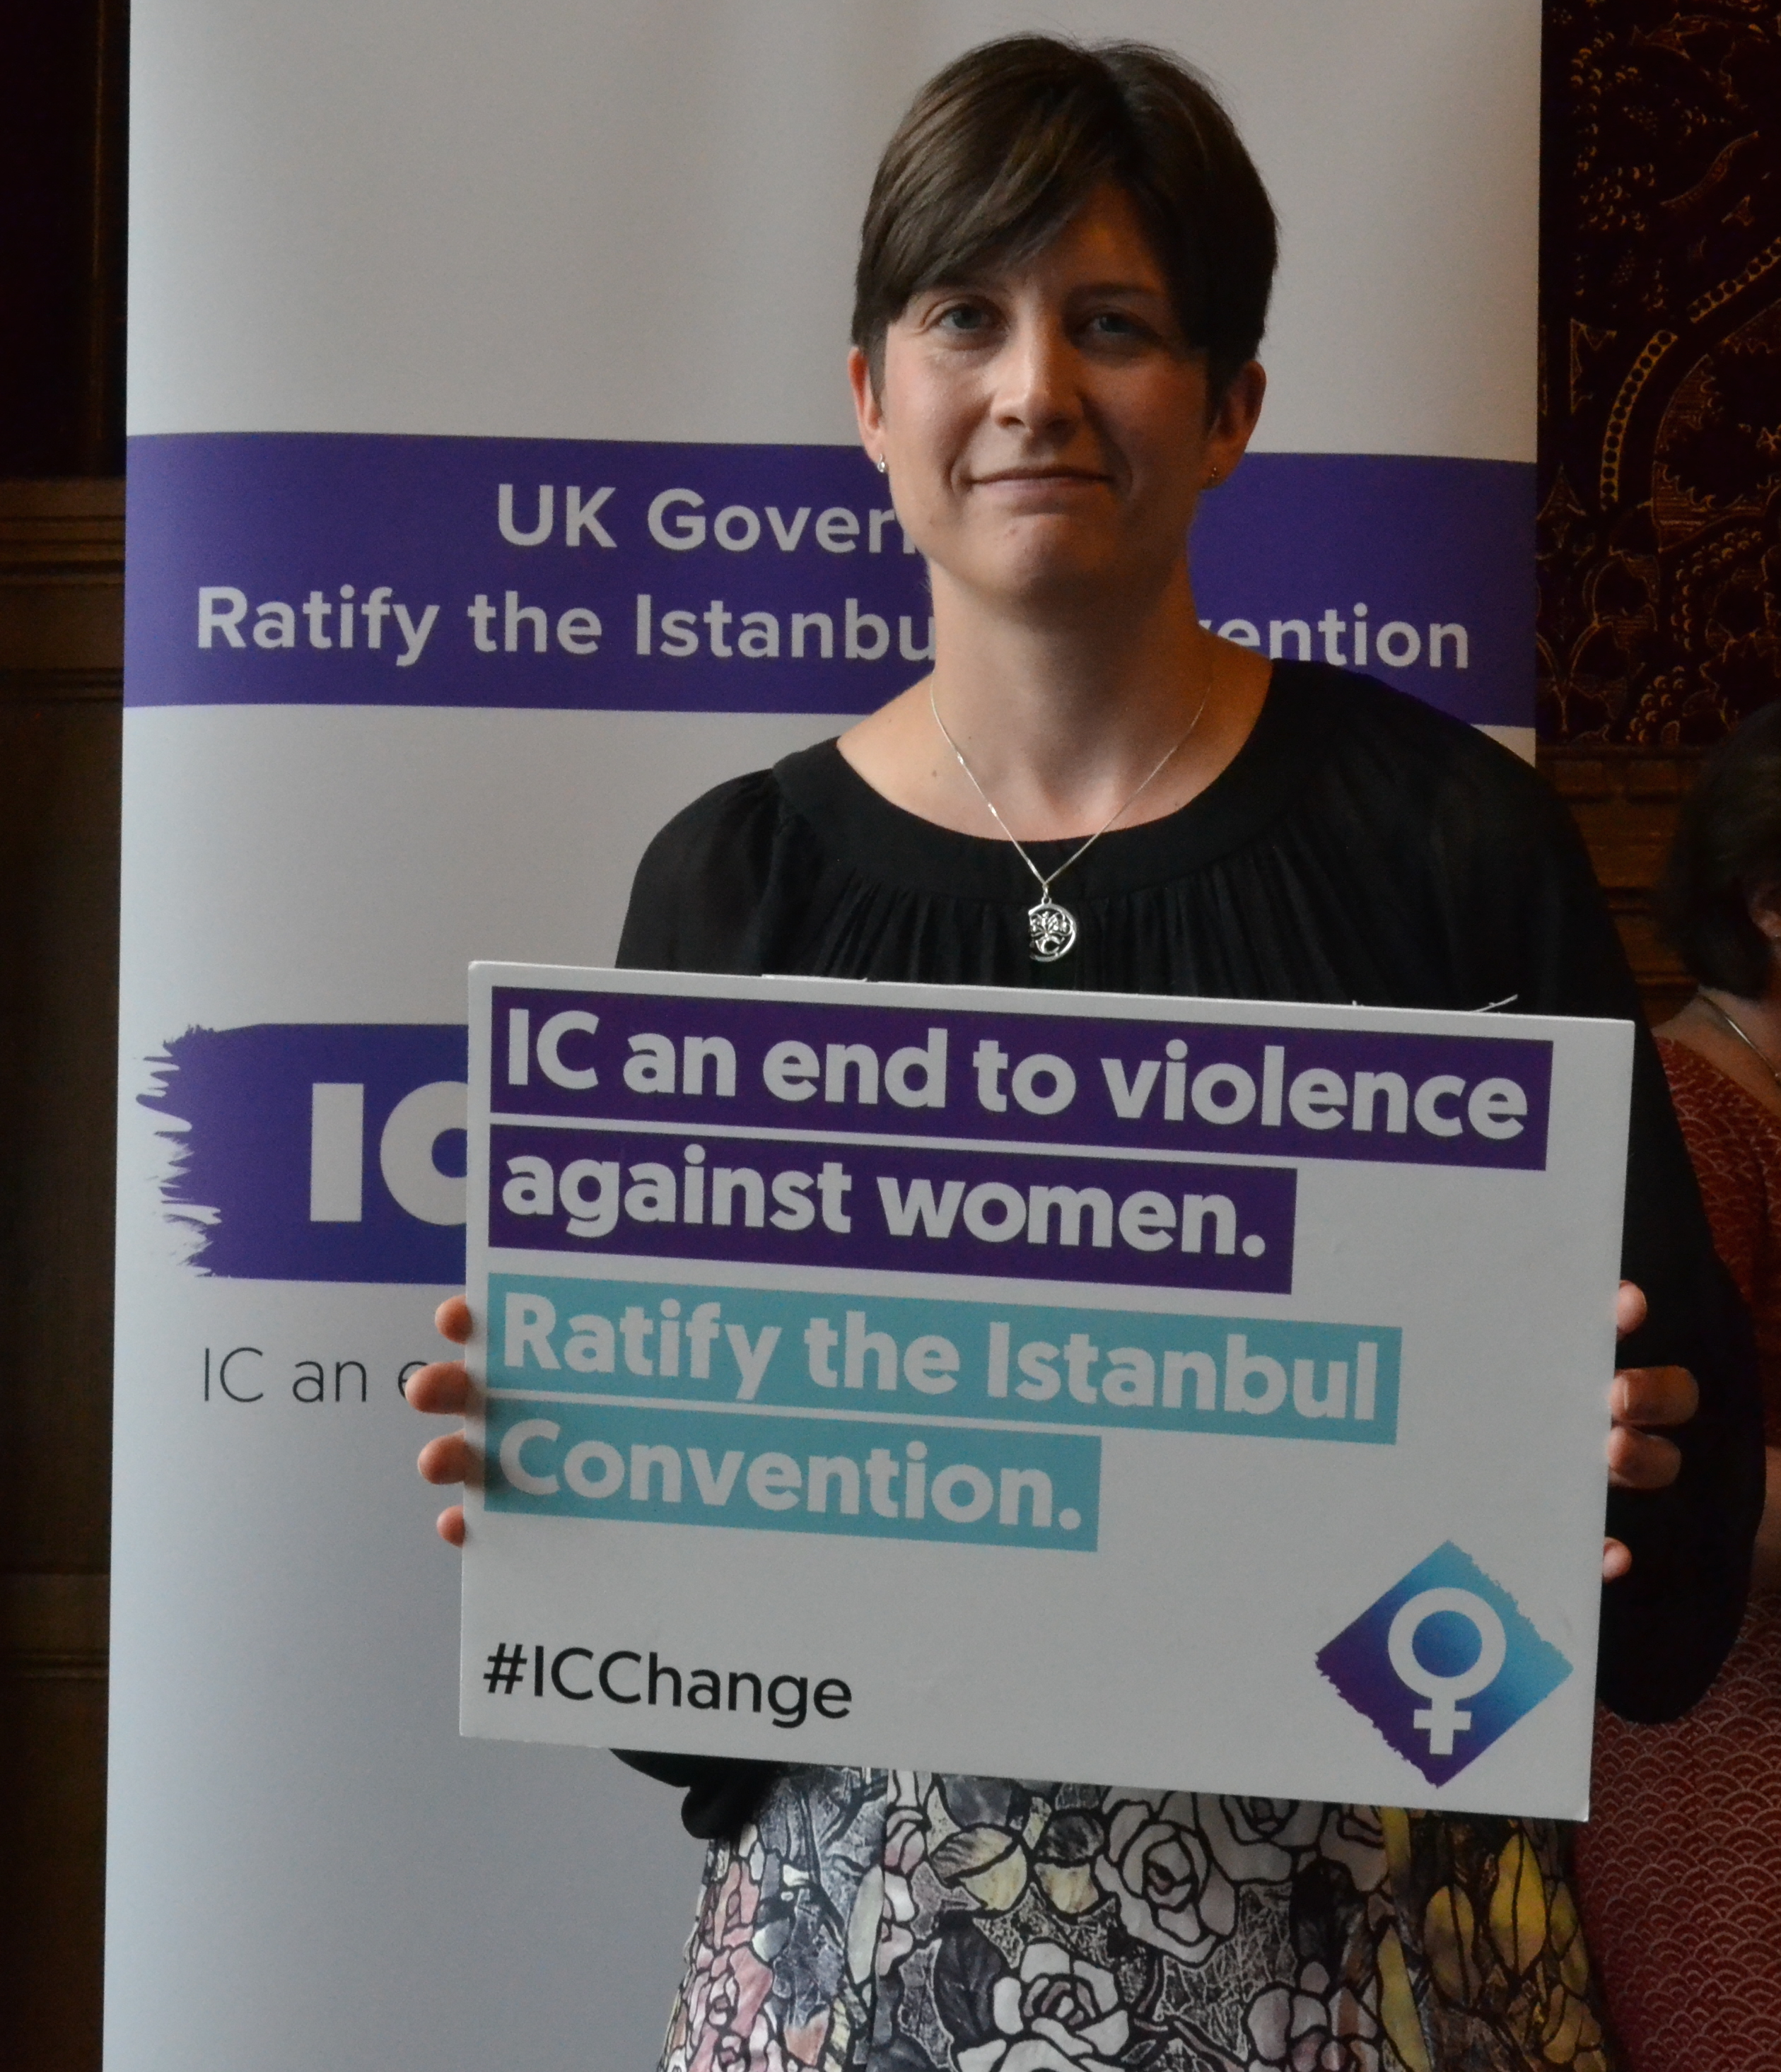 Alison Thewliss MP shows her support for ending violence against women and girls